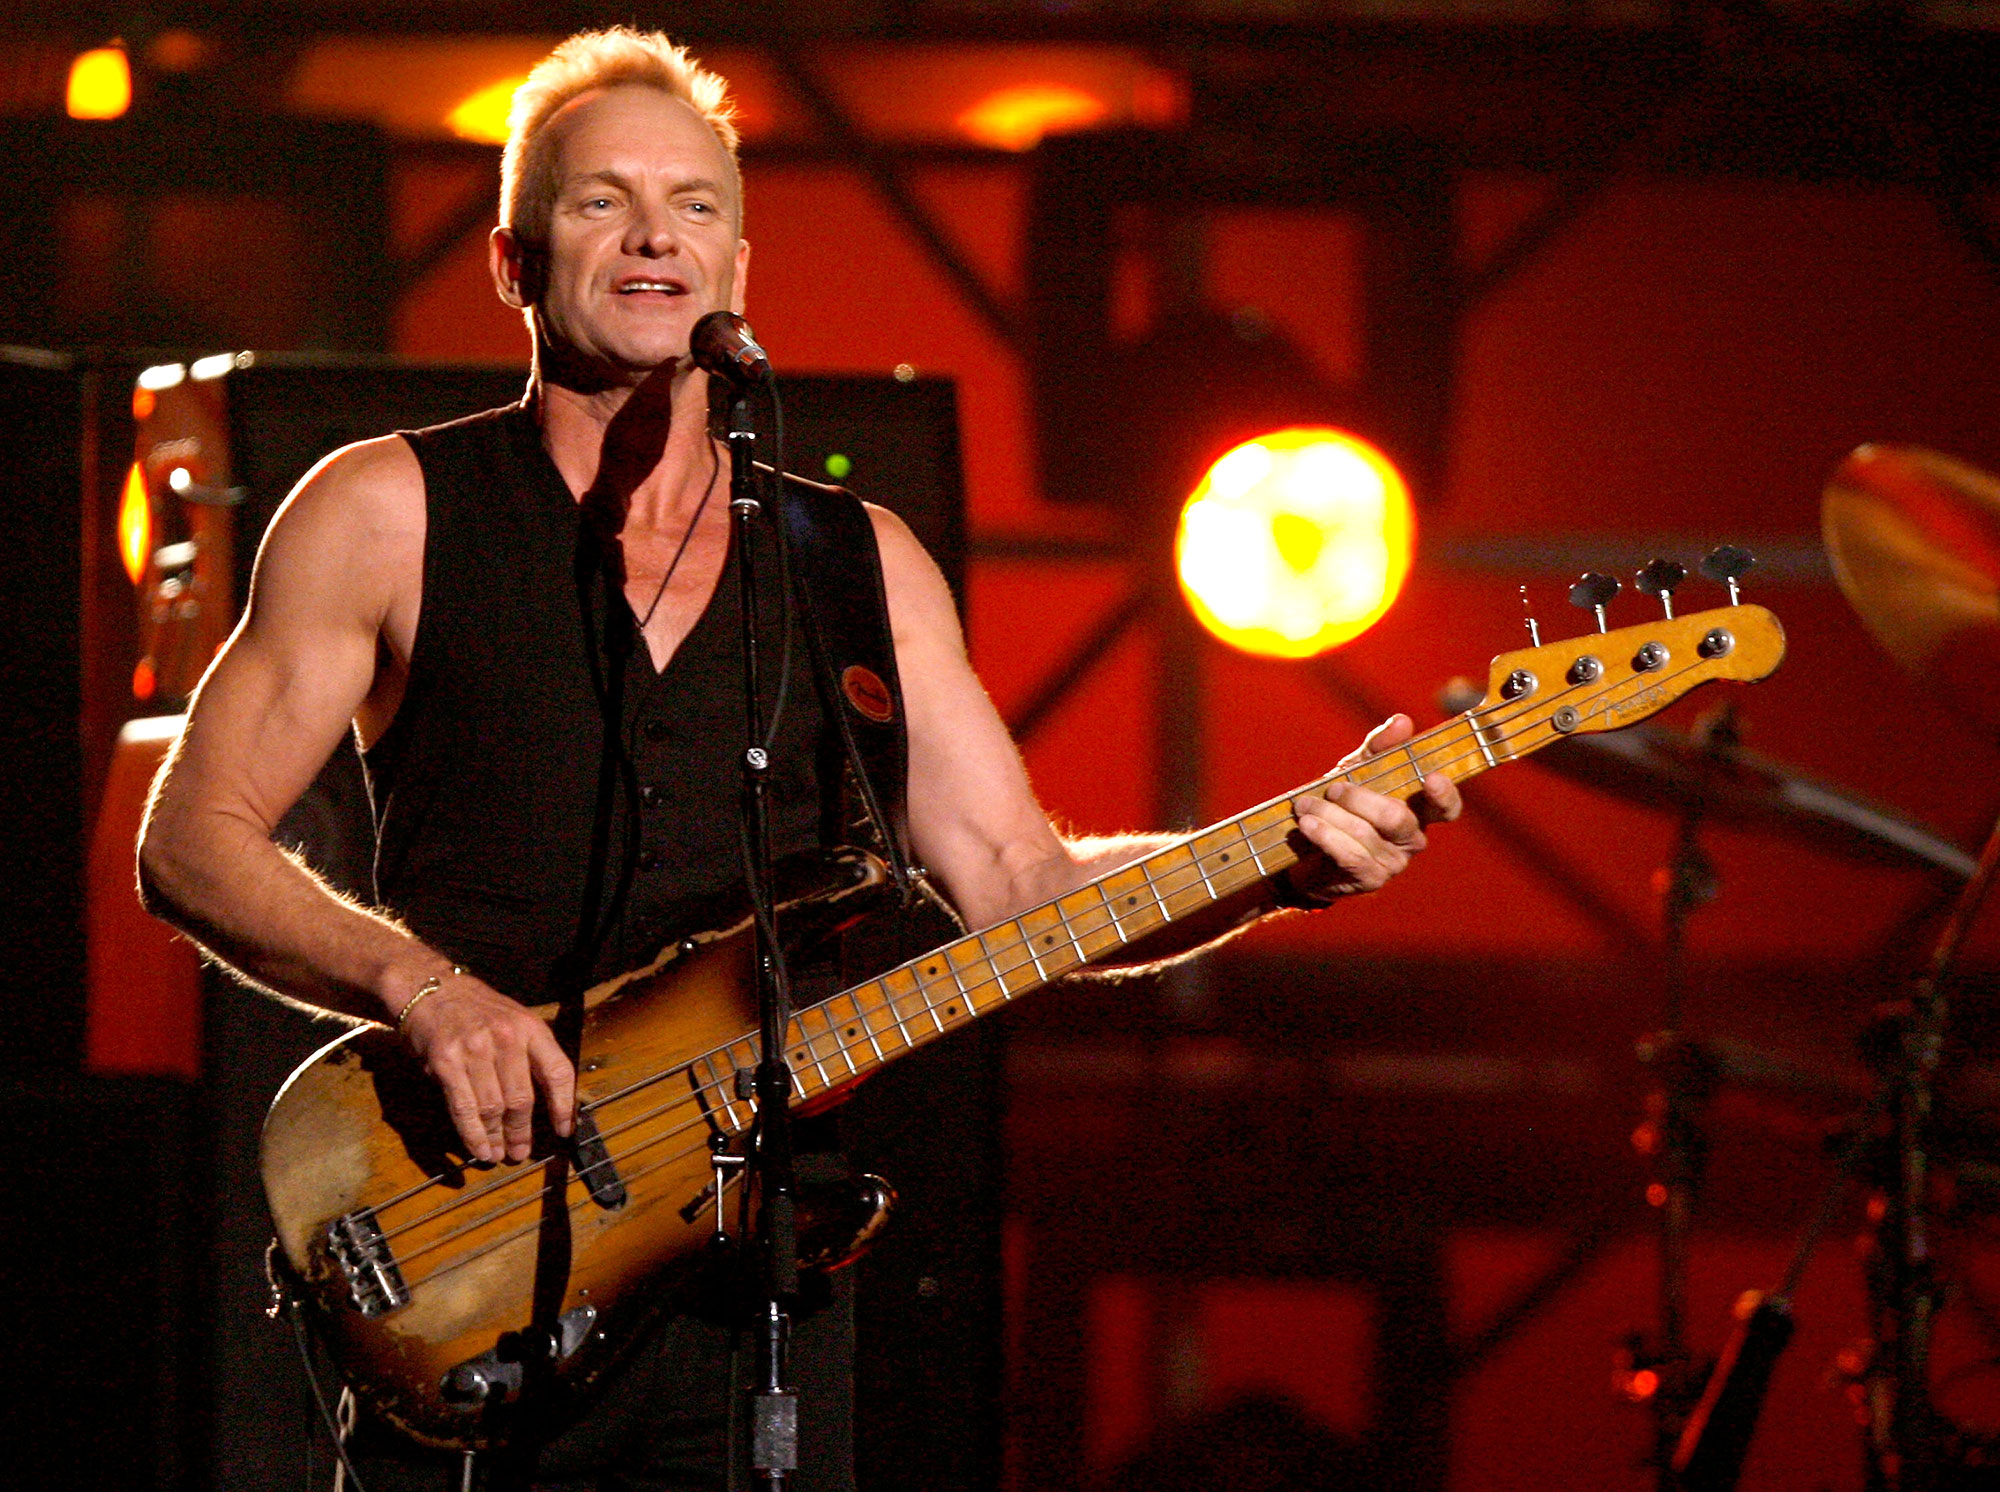 Sting Teachers Before Fame - The British musician (real name Gordon Matthew Thomas Sumner) studied to become a teacher at Northumbria University in Newcastle upon Tyne, England, in the early to mid-'70S. He eventually got a job teaching English and music at St. Paul's First School in Cramlington, England, where he remained for two years.